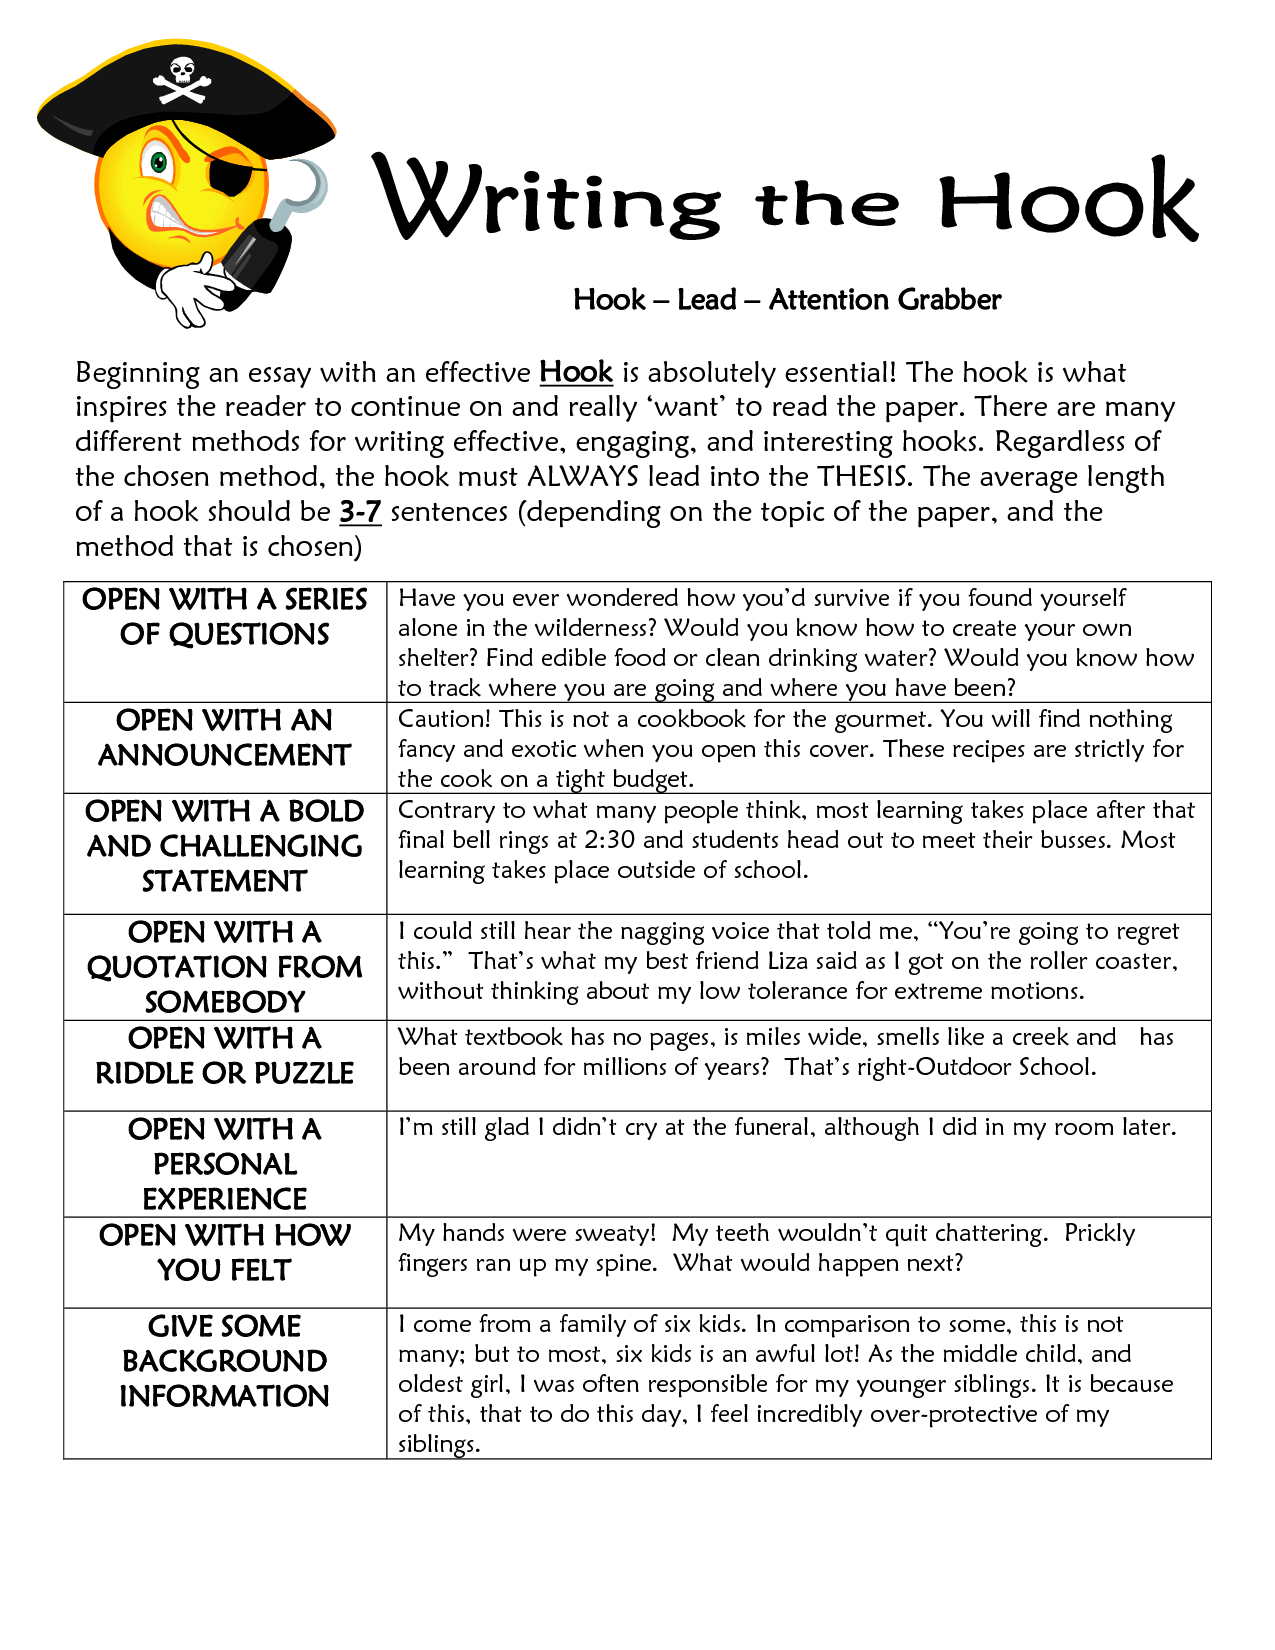 Hook introduction essay